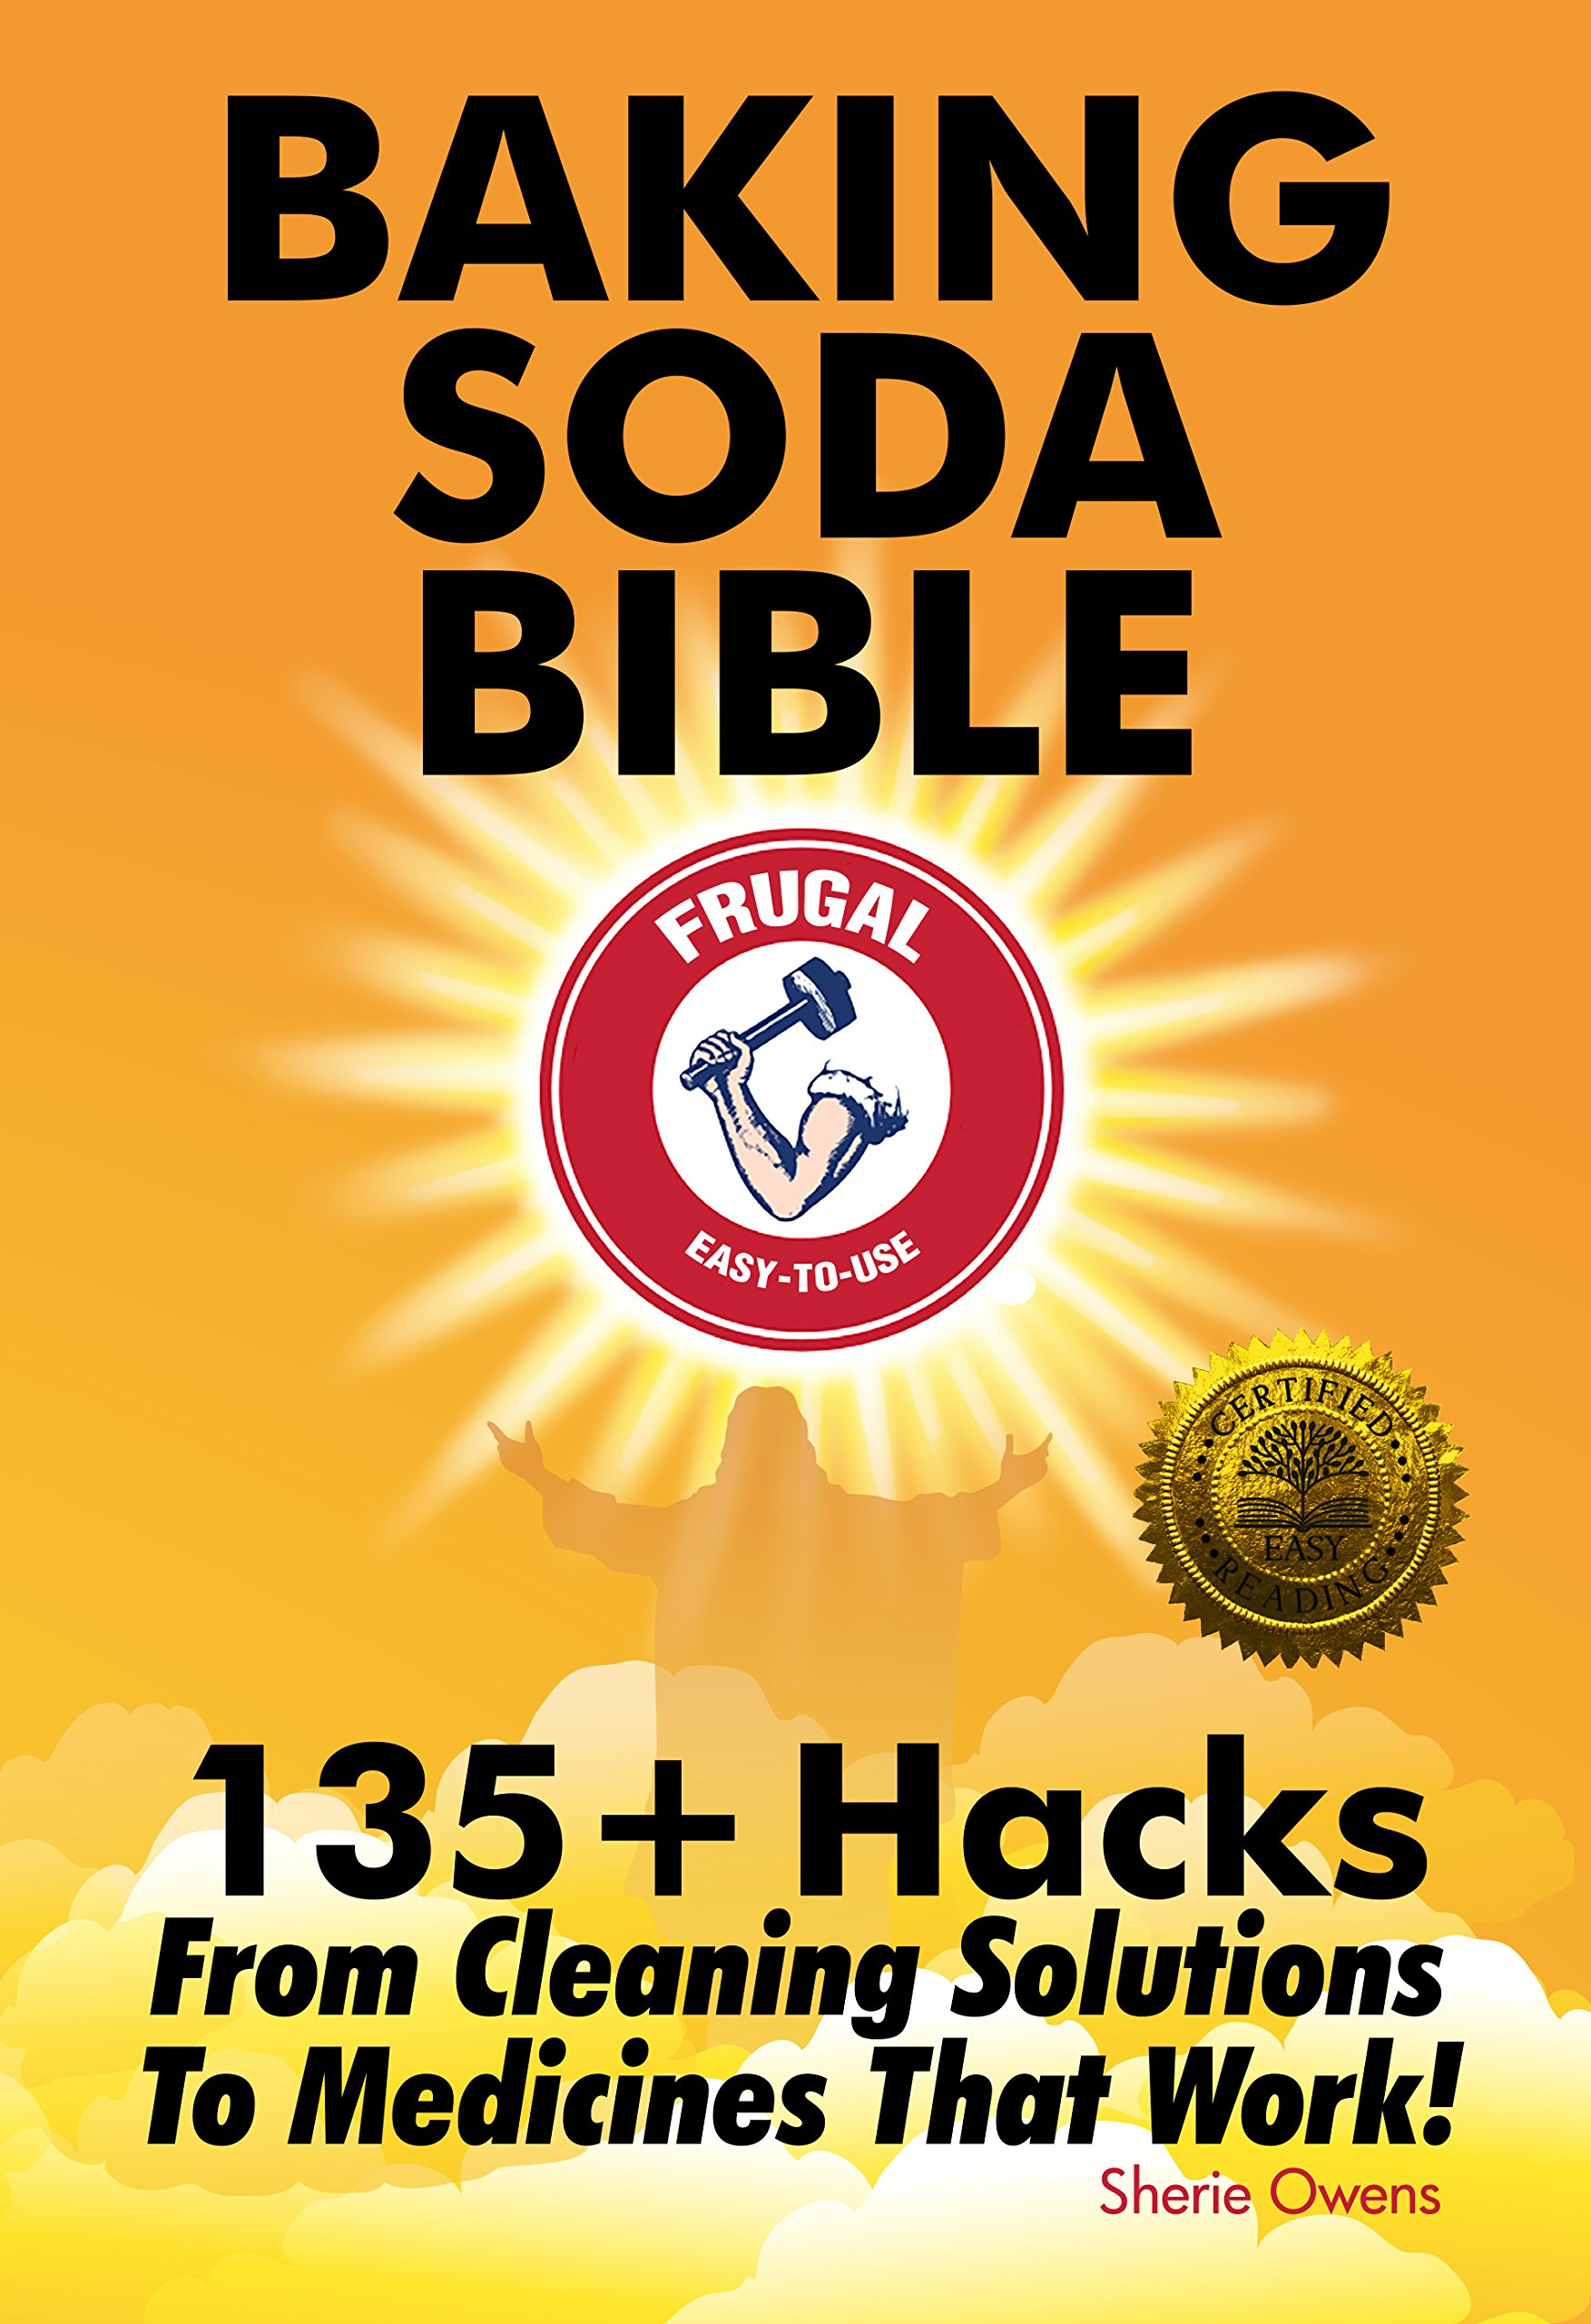 Baking Soda Bible